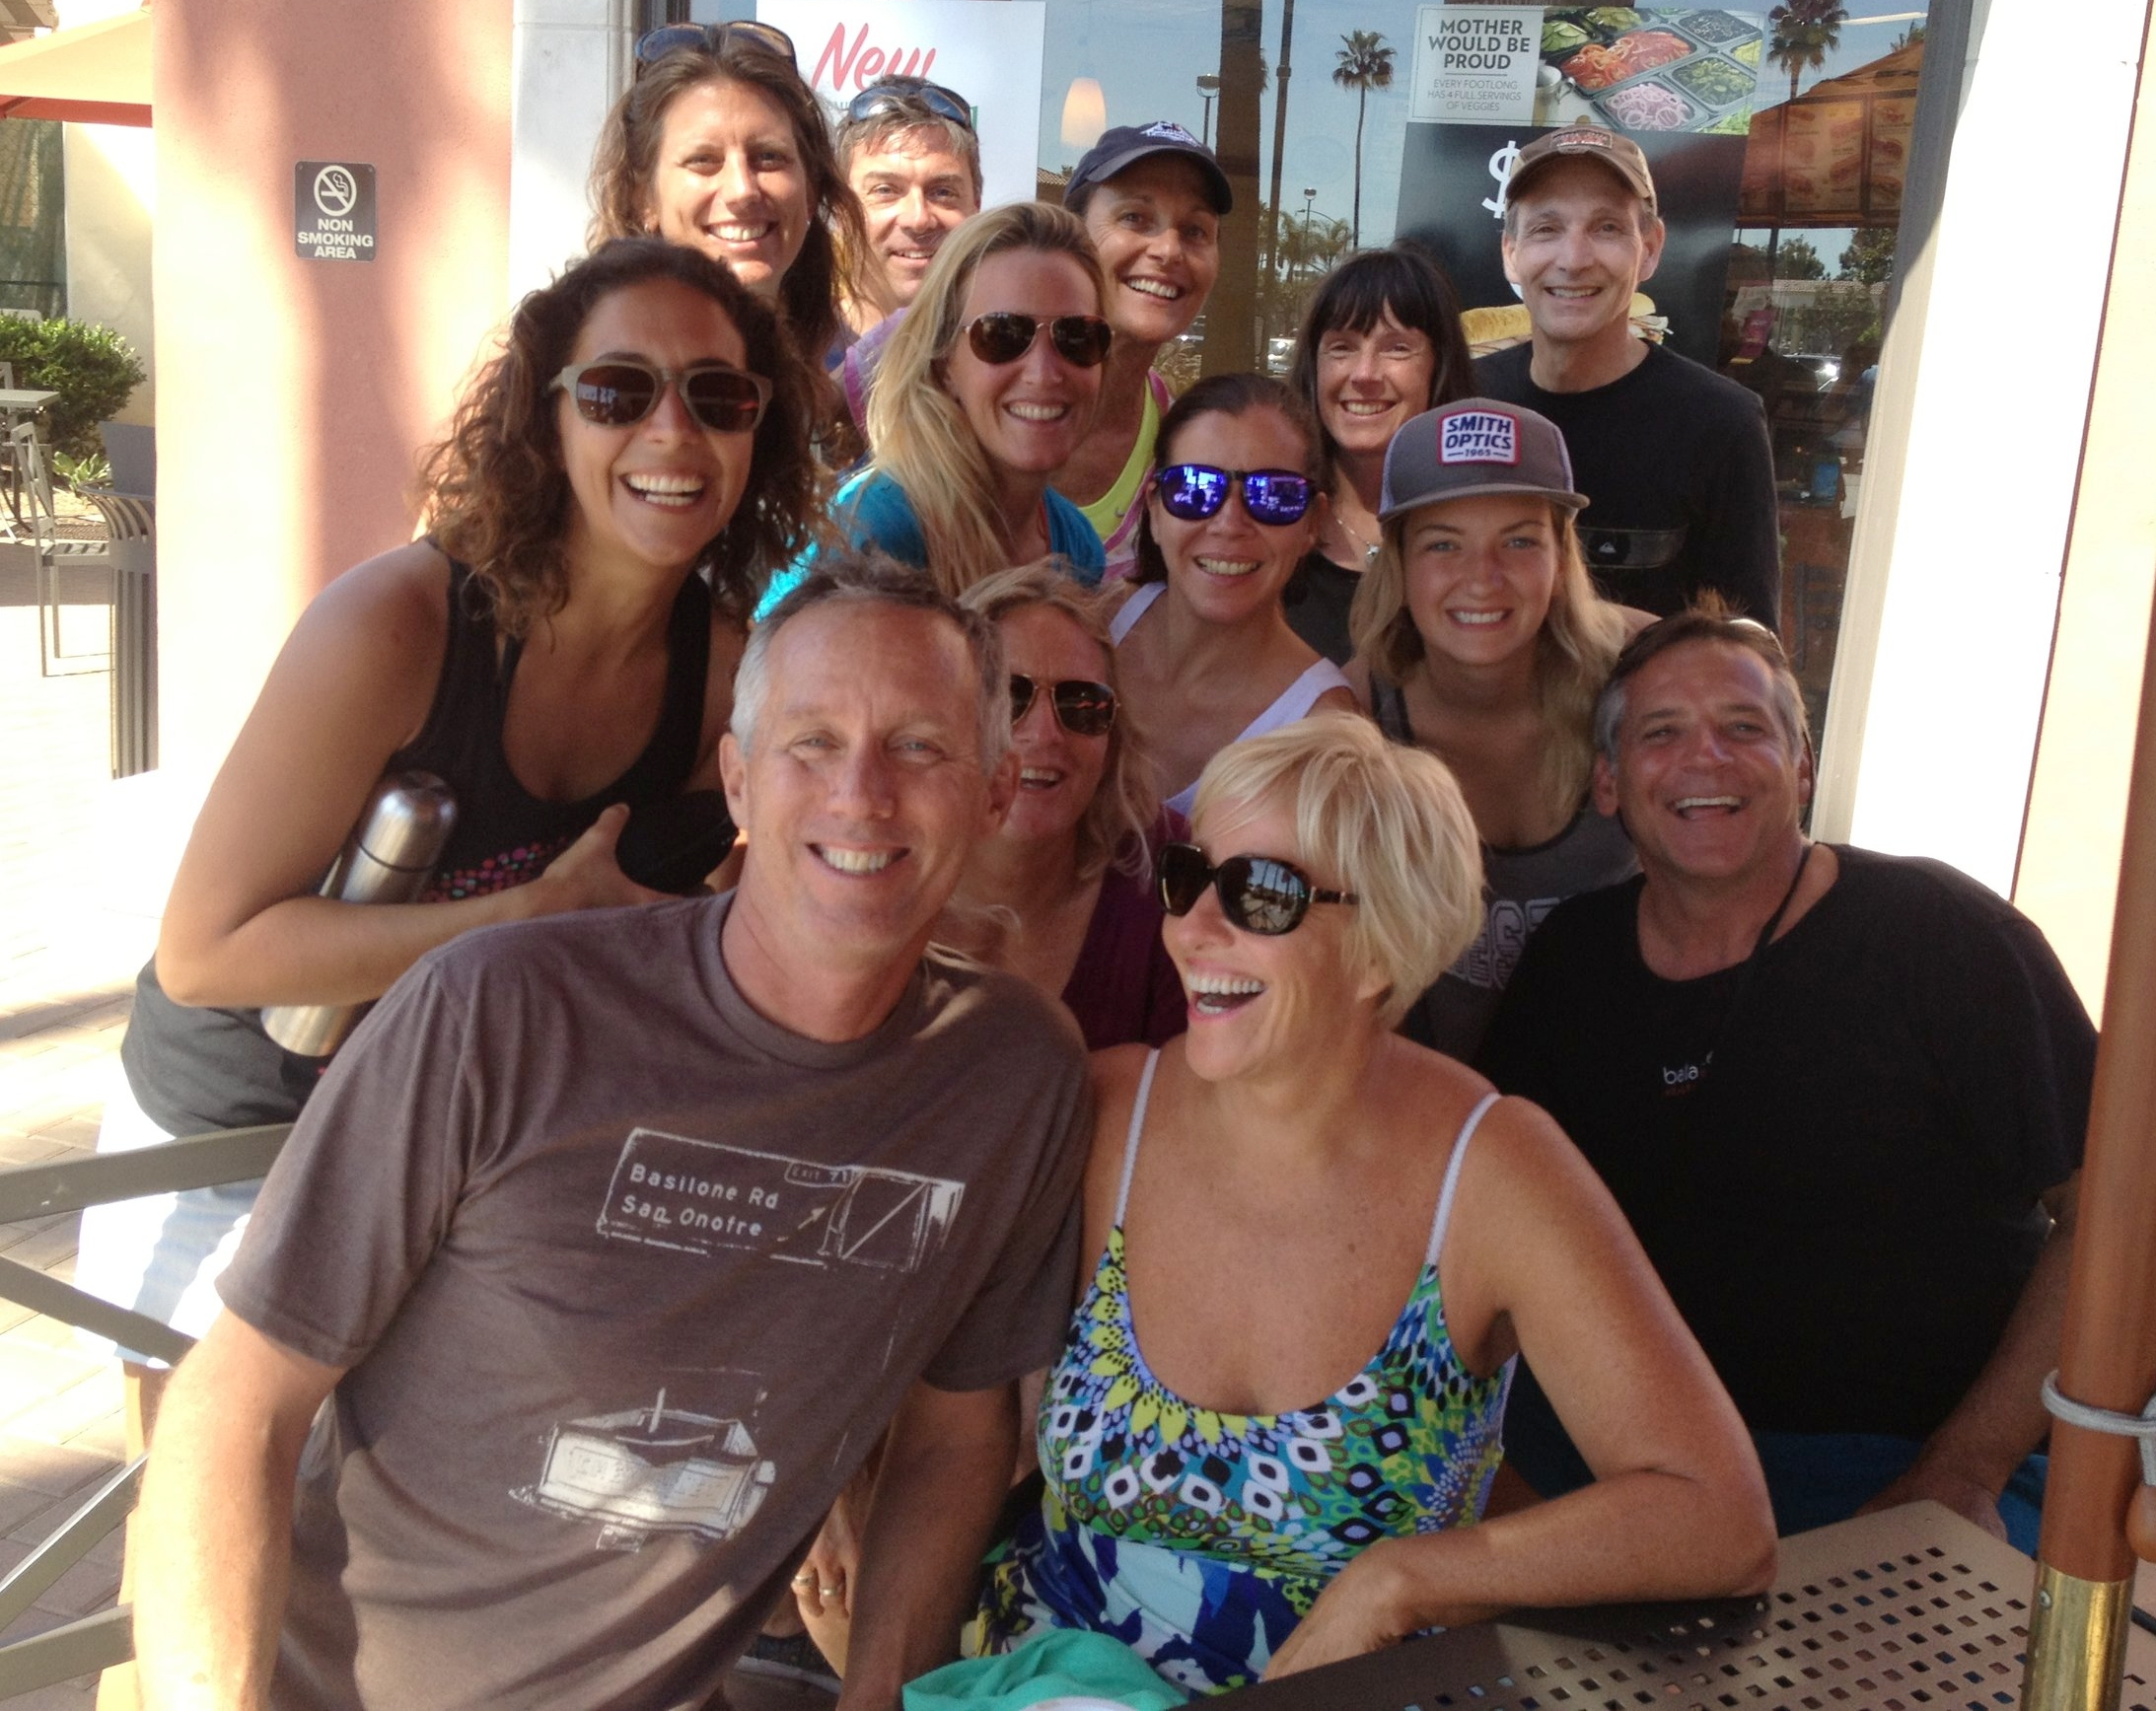 We enjoy most of our meals together, especially lunch after a morning of surfing + yoga!